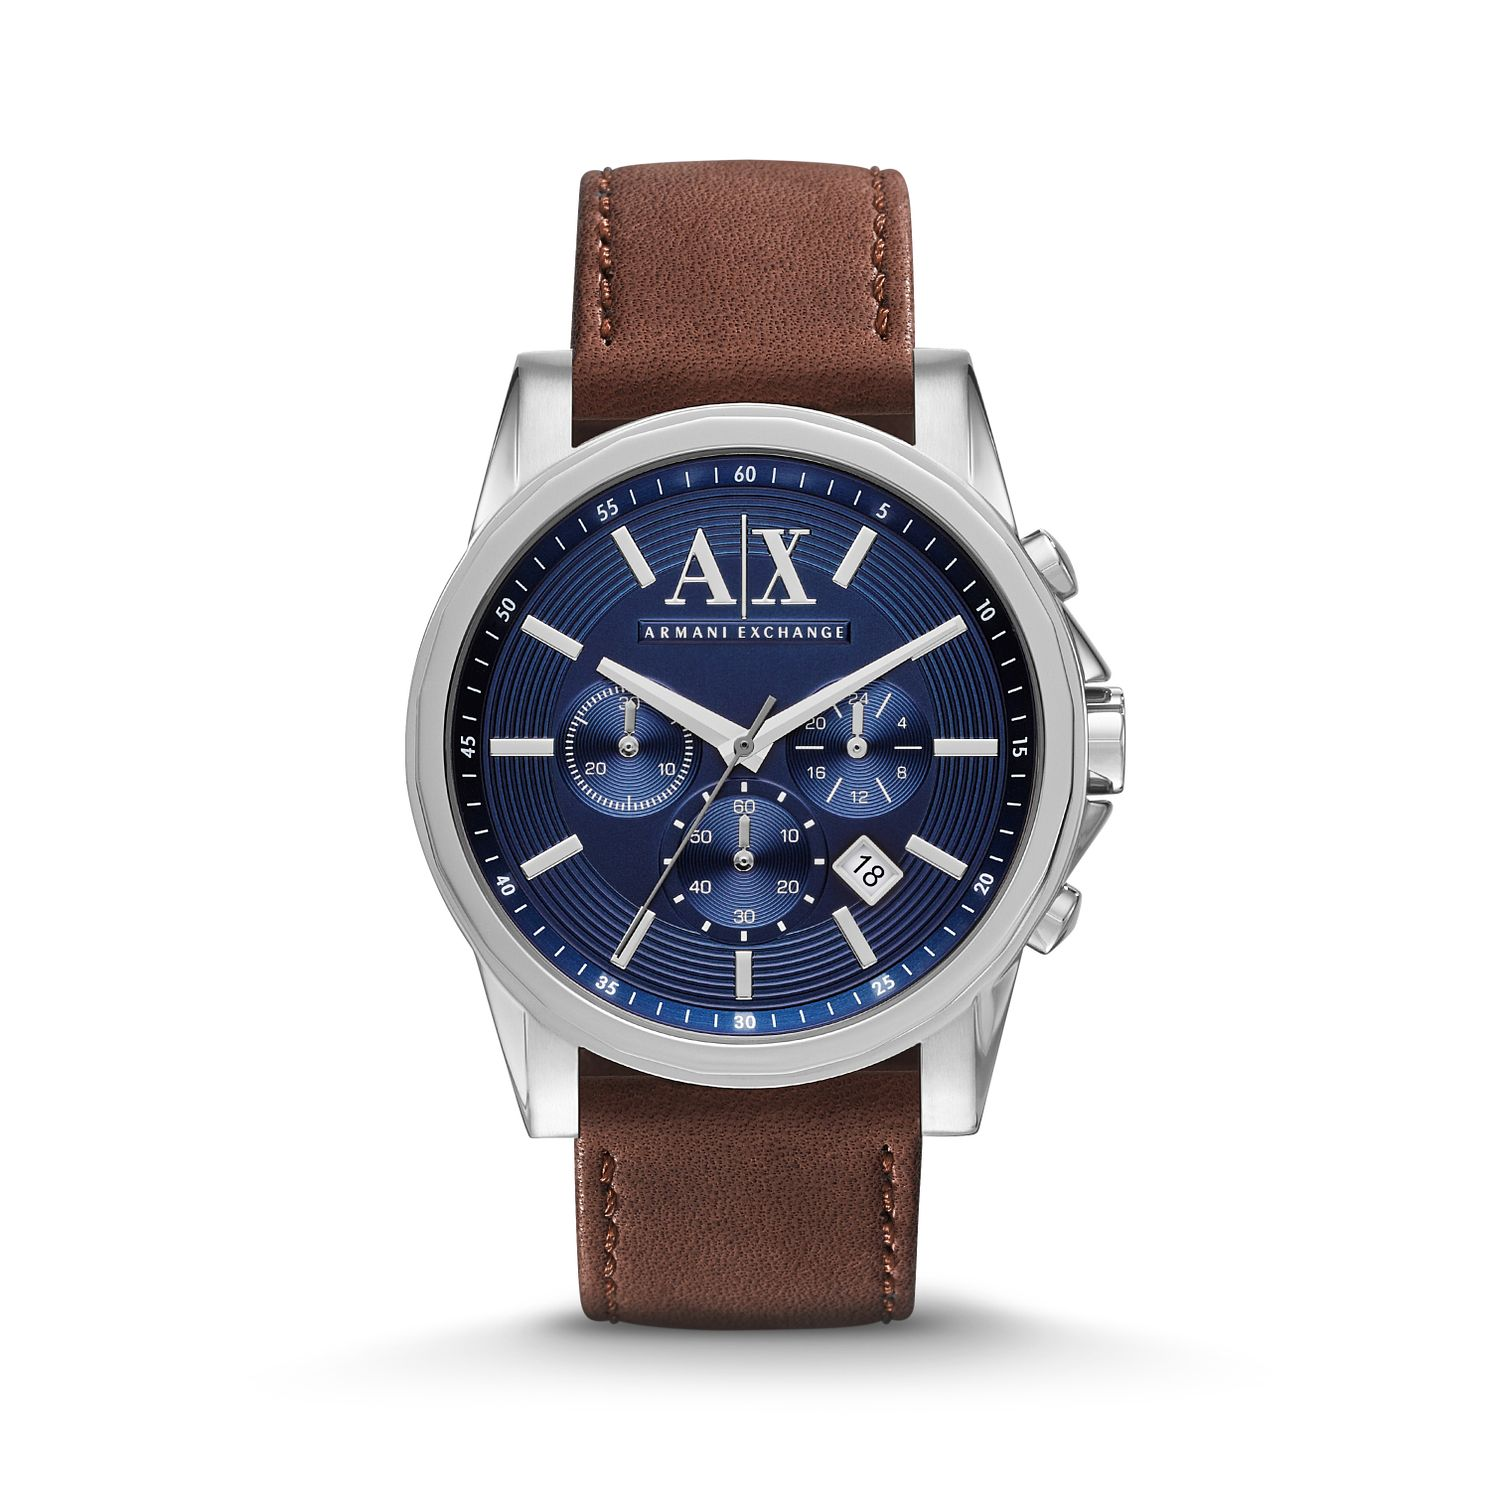 Buy Armani Exchange Watches Online Hsamuel Huawei Watch Stainless Steel With Link Band Us Warranty Mens Brown Leather Strap Product Number 2834219